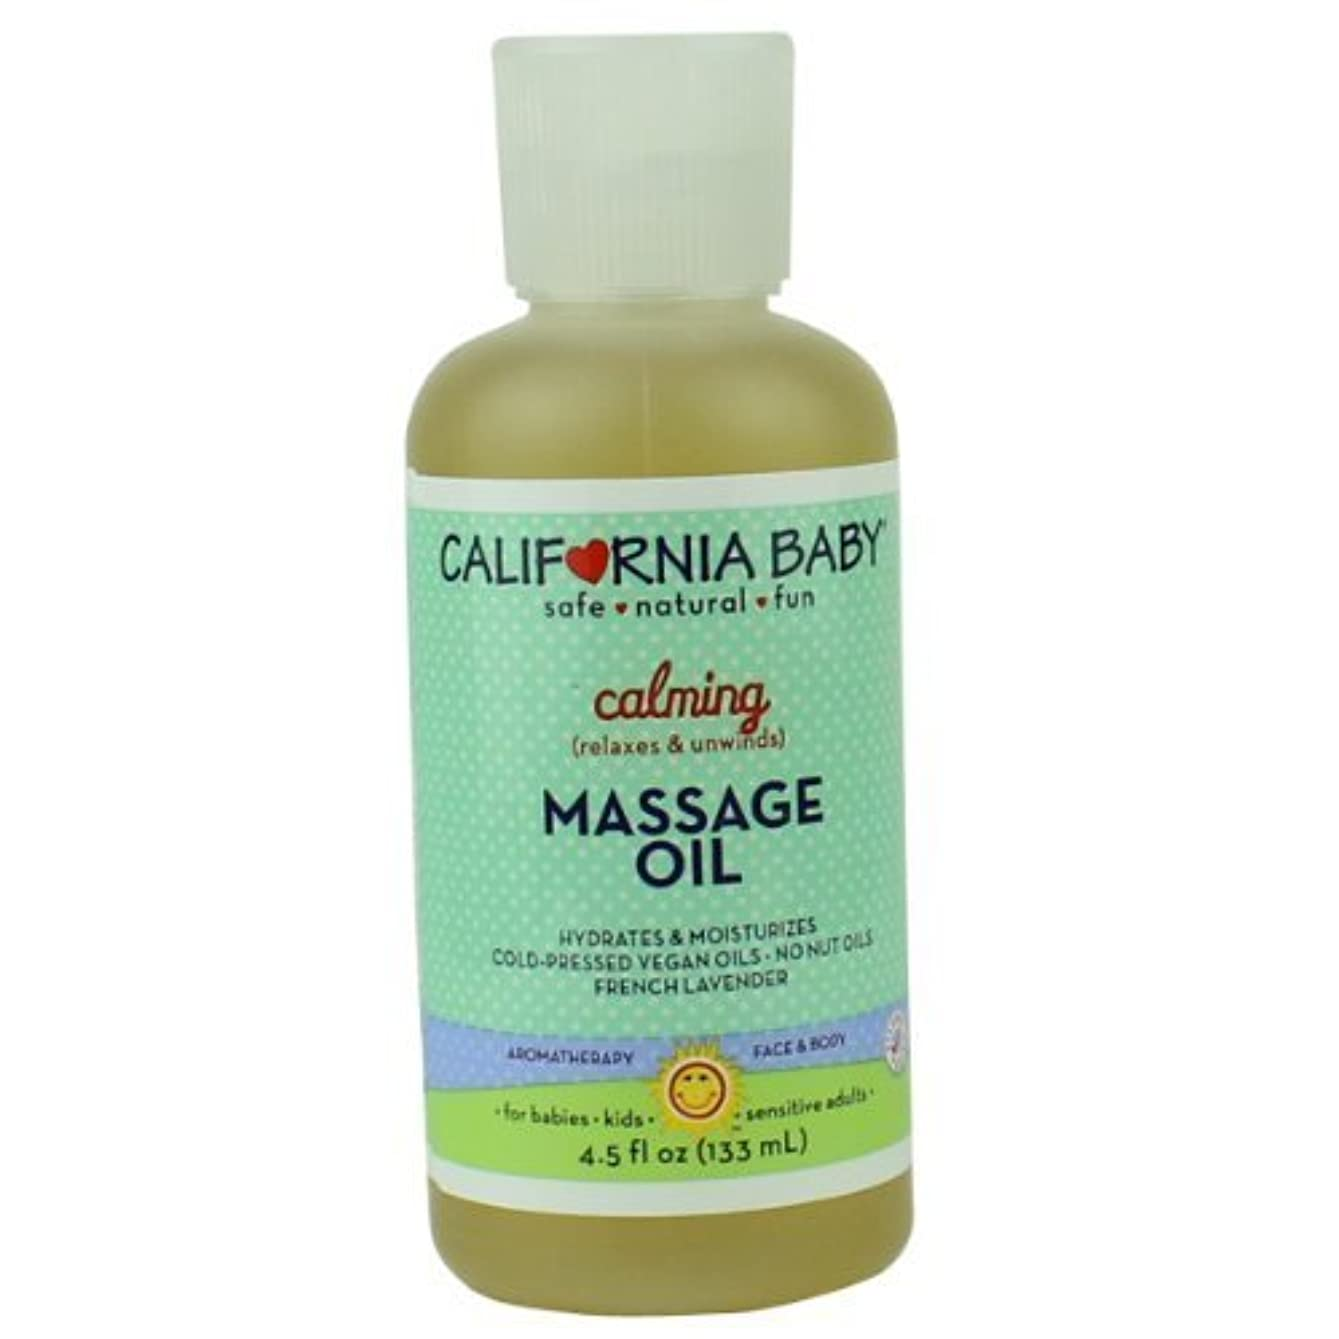 議題ガレージ飾るCalifornia Baby Calming Massage Oil 4.5fl.(133ml) by California Baby [並行輸入品]